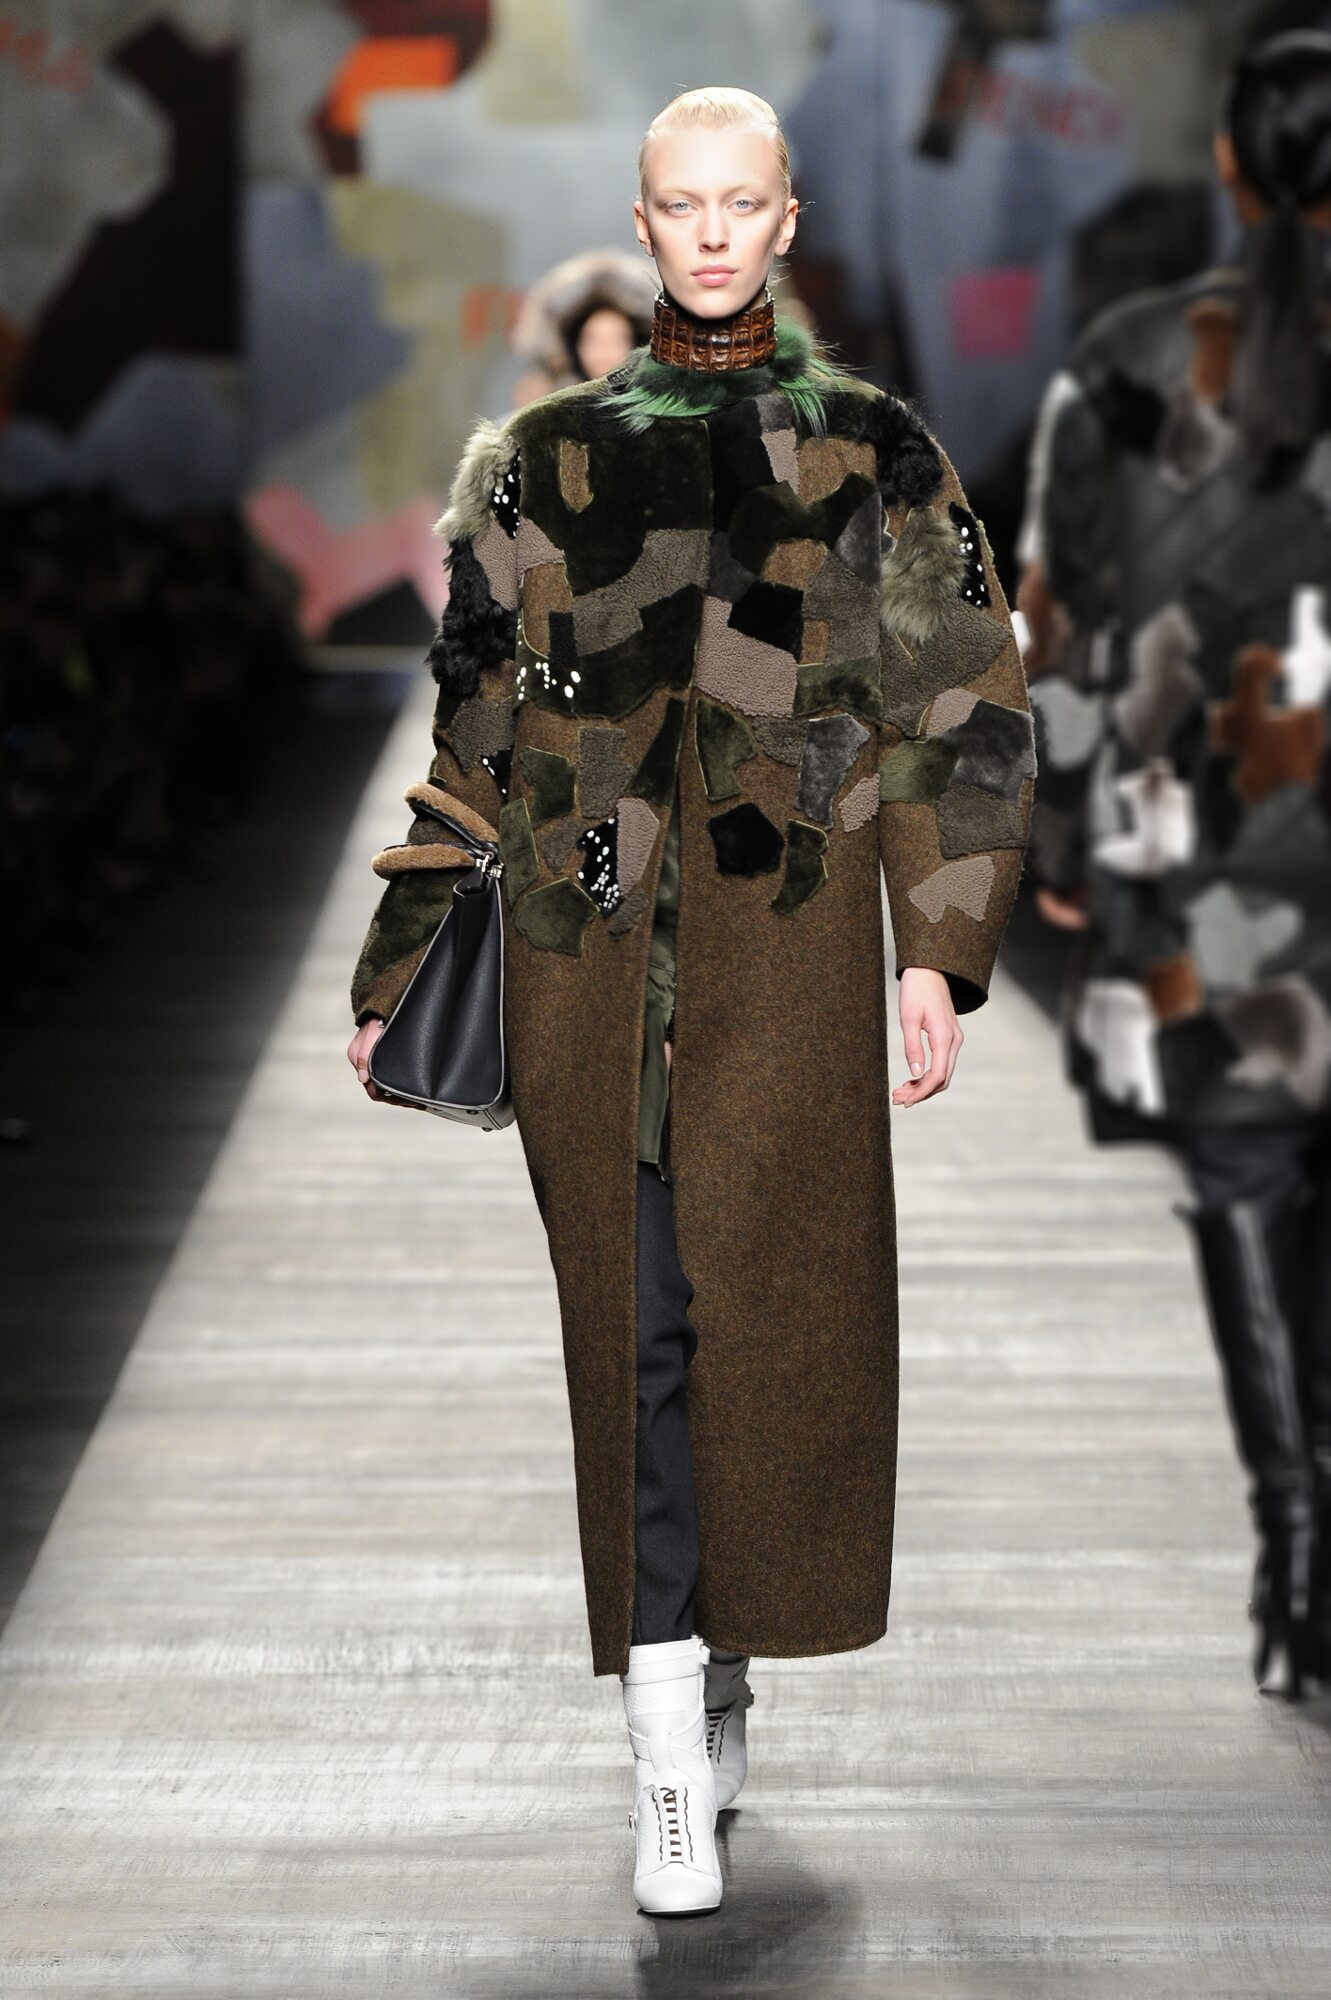 FENDI FALL WINTER 2014-15 WOMEN'S COLLECTION | The Skinny Beep